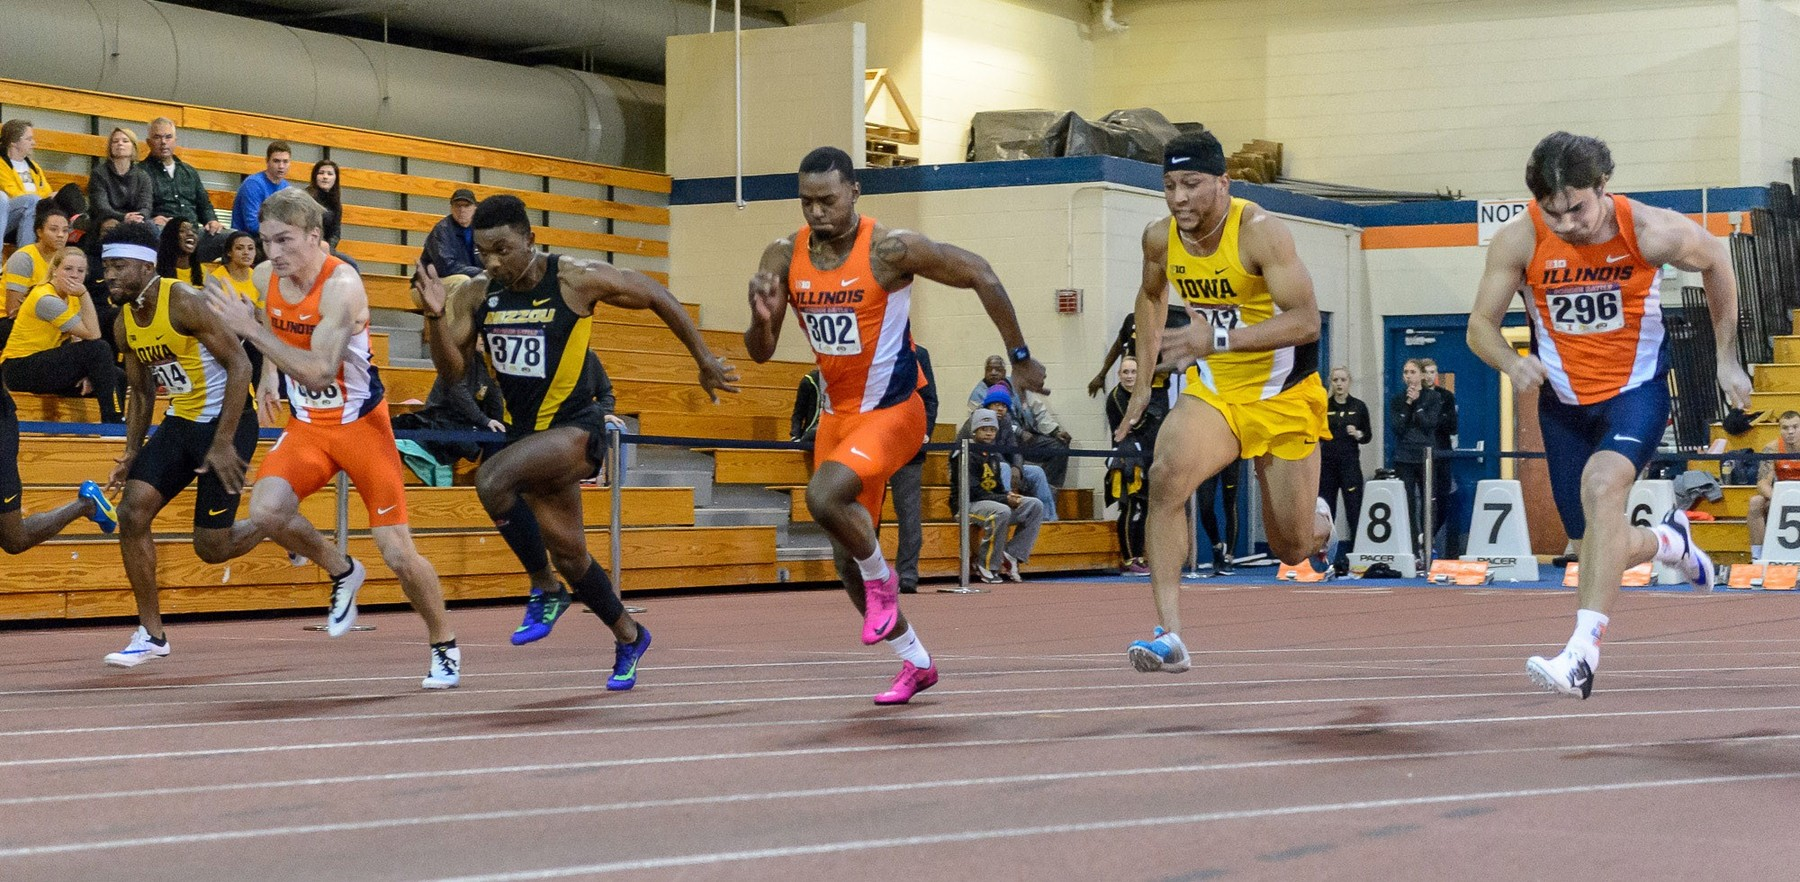 Illini runners begin a sprint against Missouri and Iowa competitors